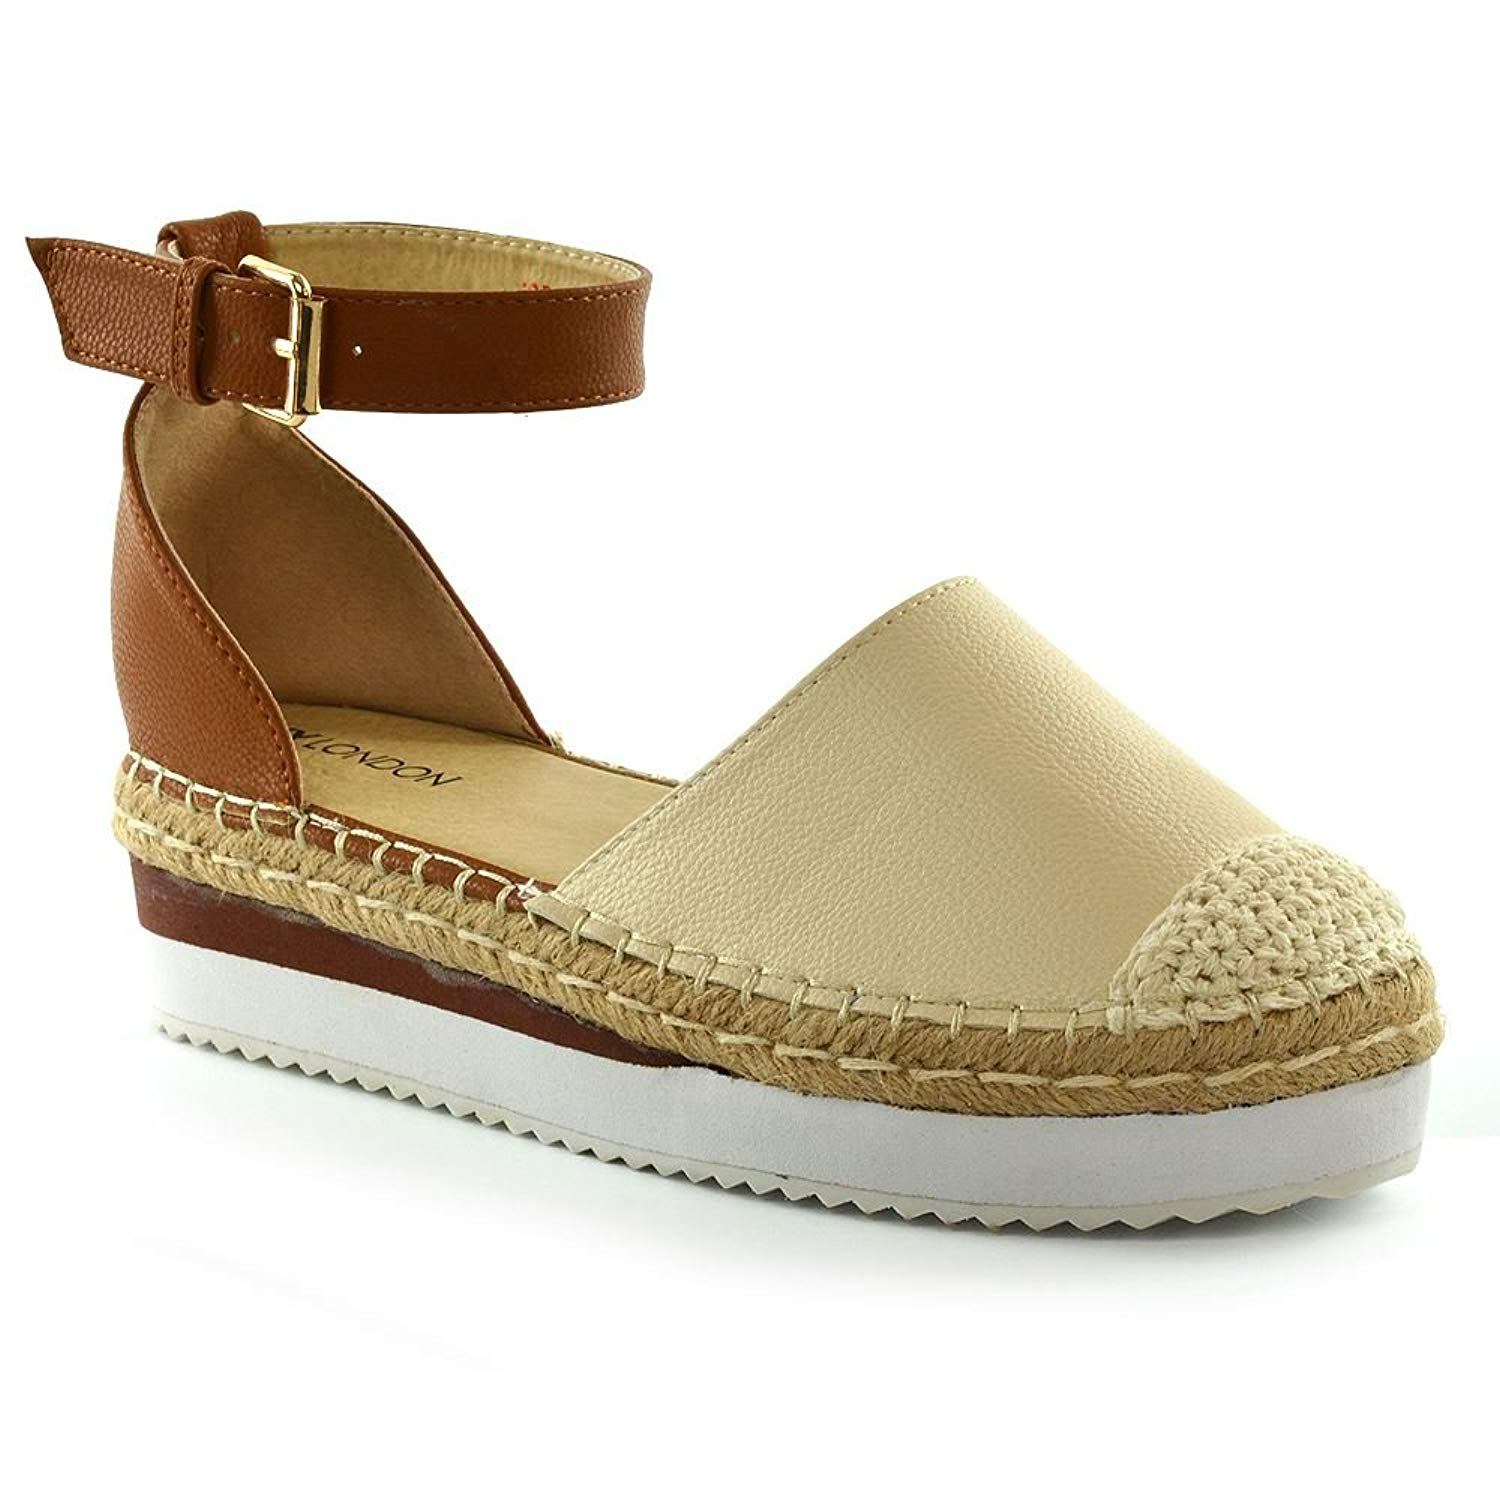 b6ee526eb0b ESSEX GLAM Womens Platform Sandals Ladies Low Wedge Heel Summer Espadrilles  Shoes